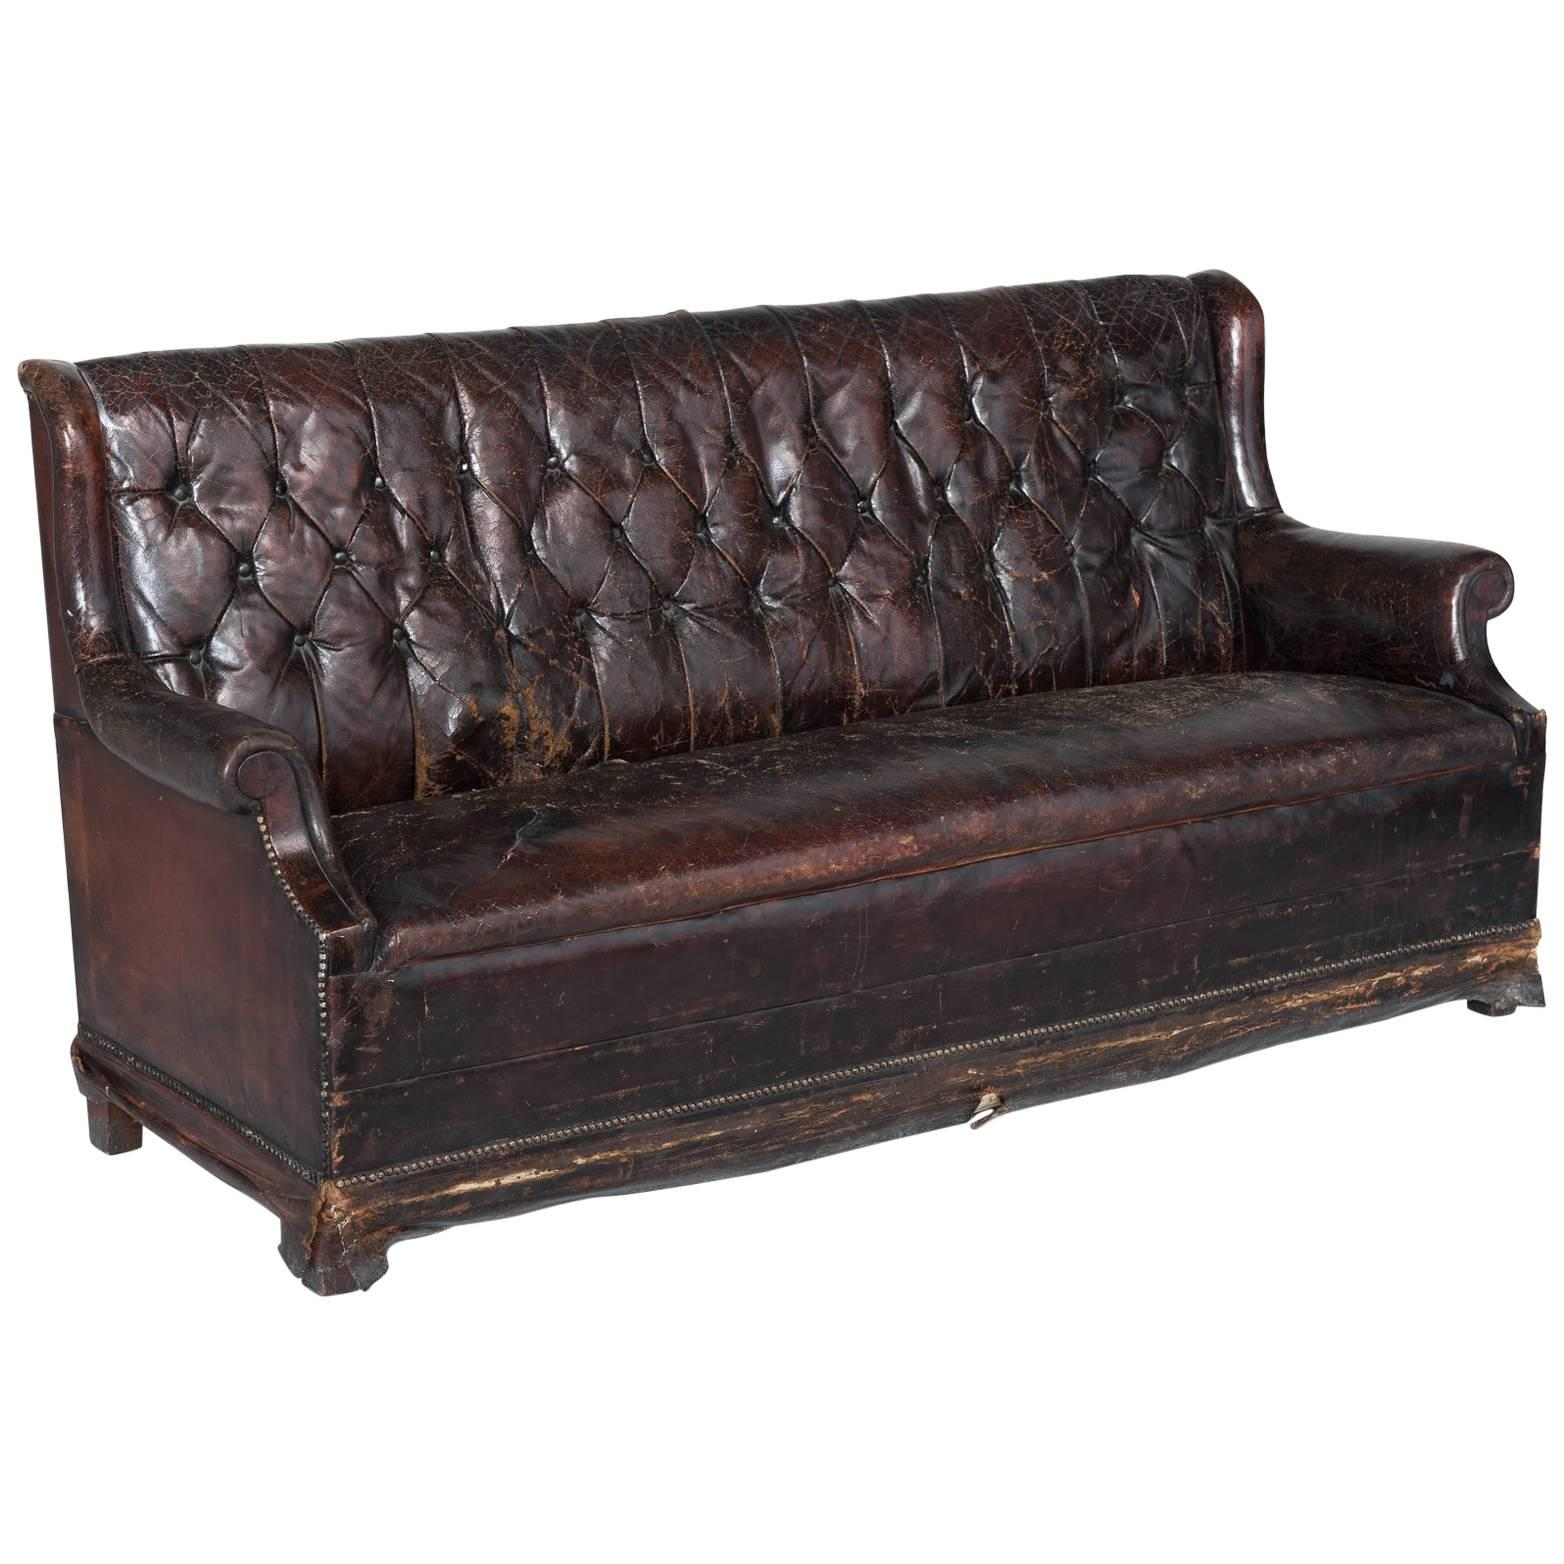 Brass Studded Leather Club Sofa, England, Circa 1860